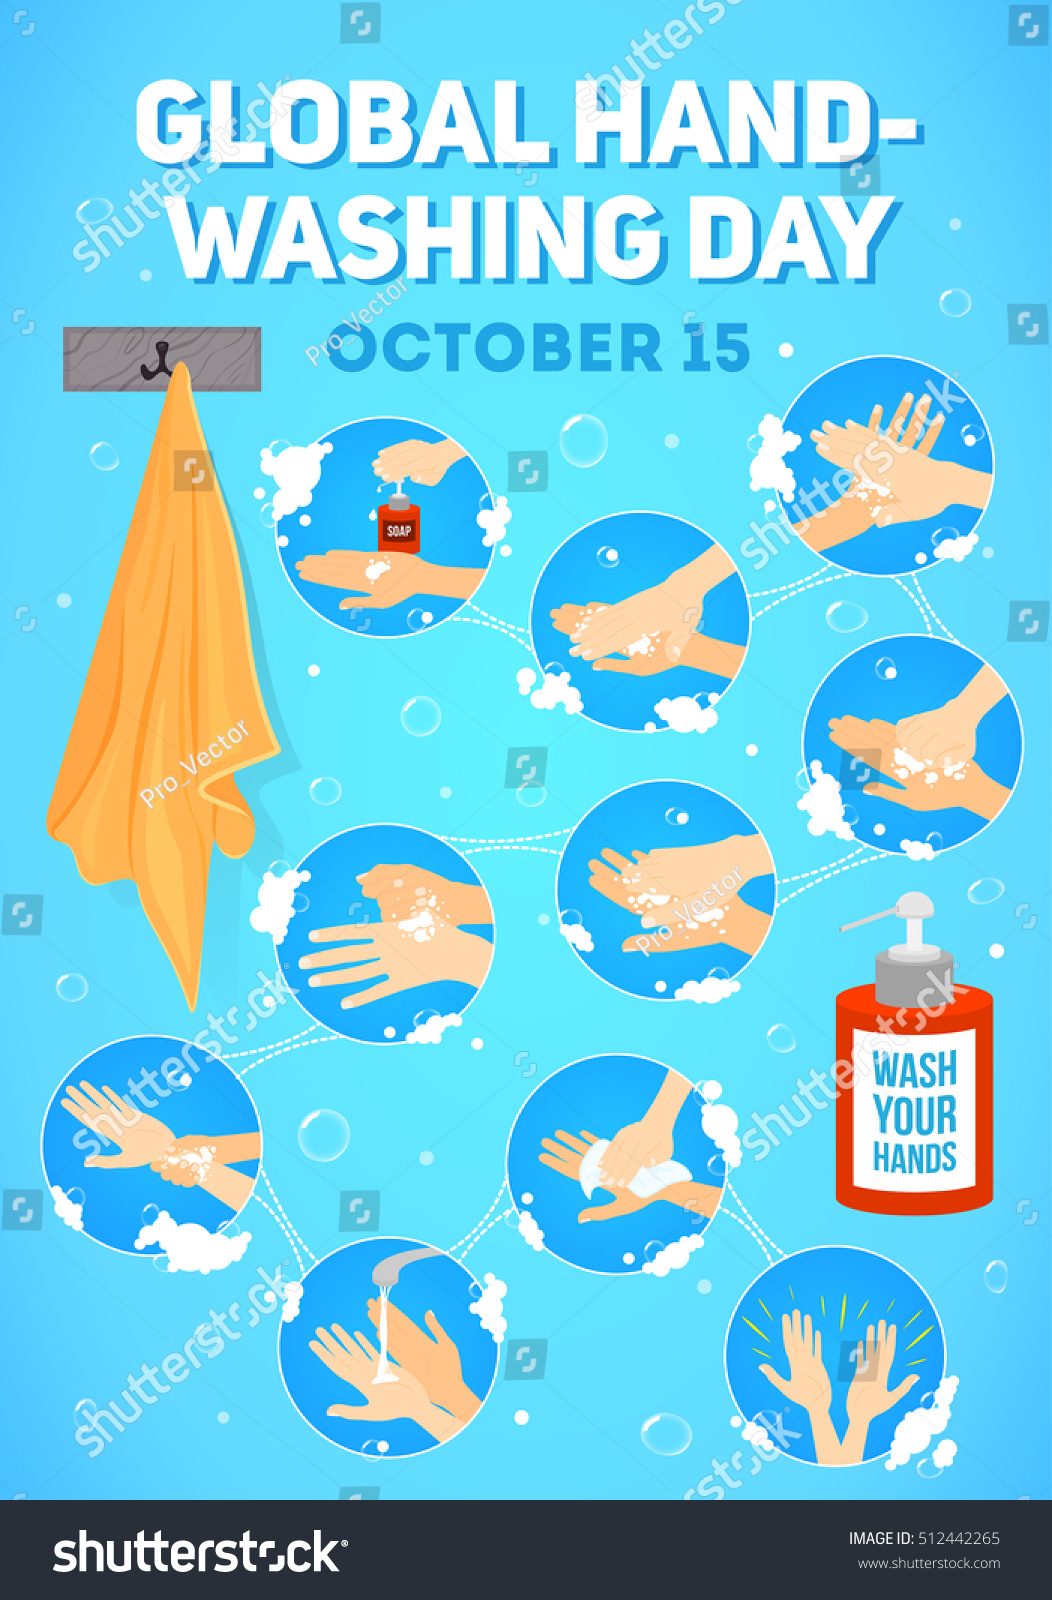 Global Hand Gestures And Their Meanings: Vector Poster Global Handwashing Day Vector Stock Vector